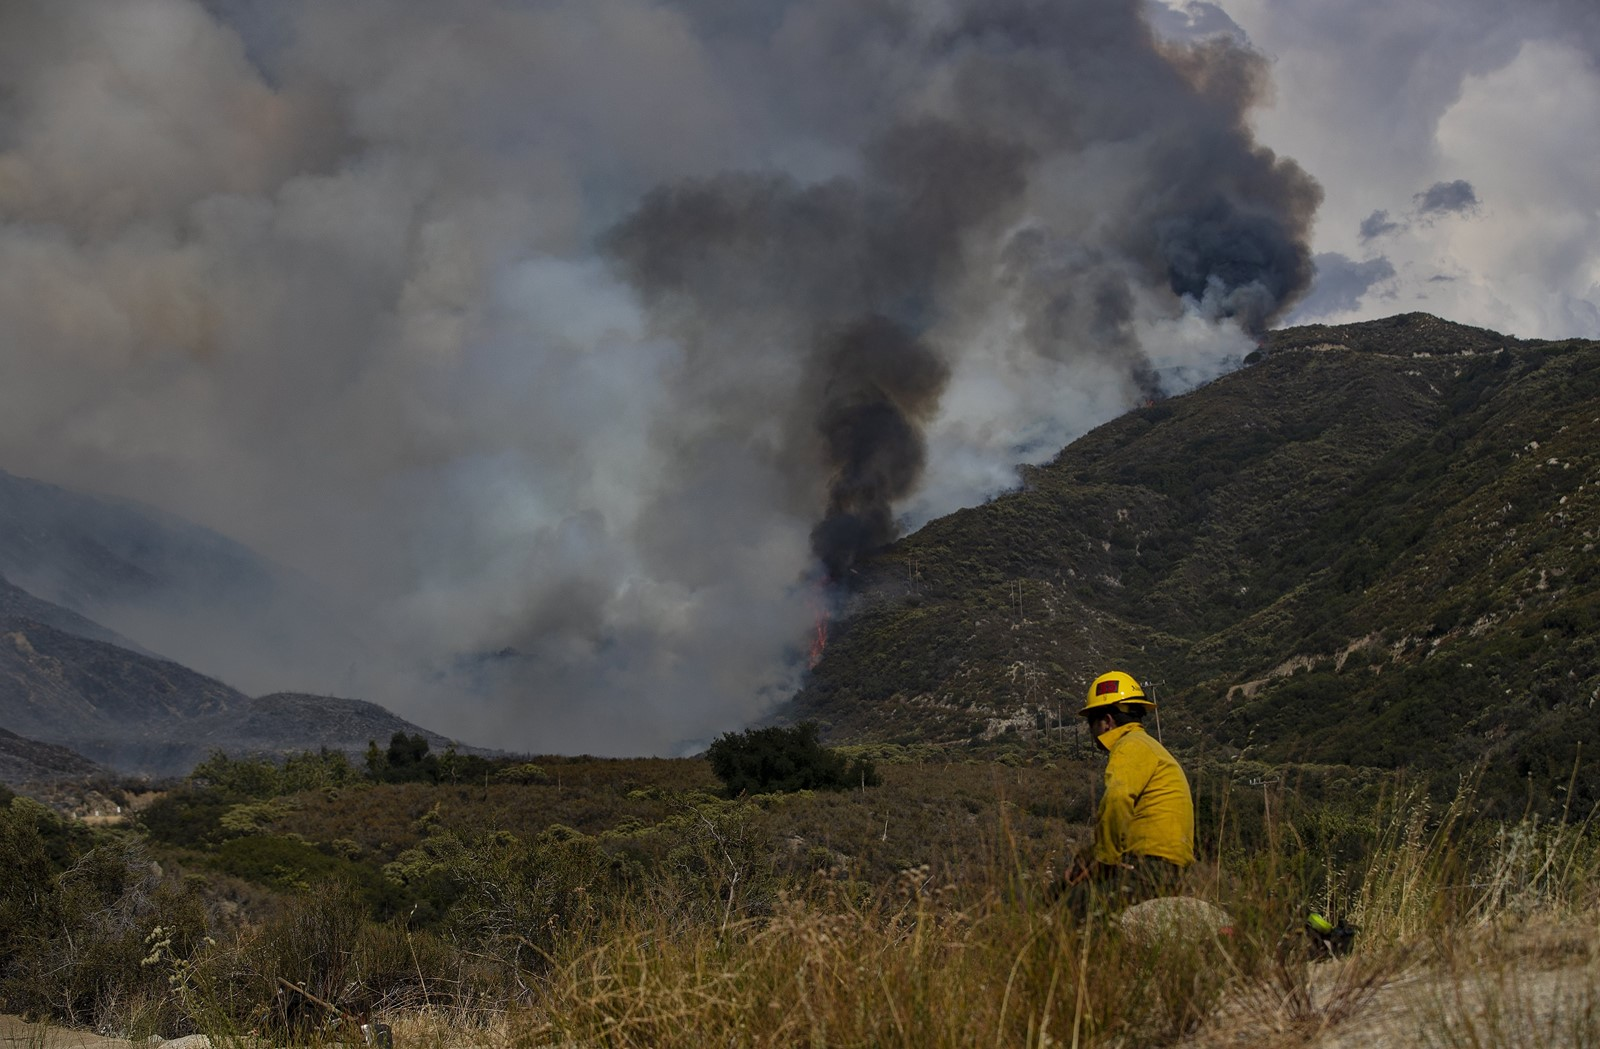 A firefighter keeps watch over the Cranston fire, crossing over Highway 74 toward Idyllwild. Riverside County sheriff's deputies ordered homes evacuated in Idyllwild, Apple Canyon, Lake Hemet, Mountain Center and Hurkey Creek. — Photograph: Gina Ferazzi/Los Angeles Times.